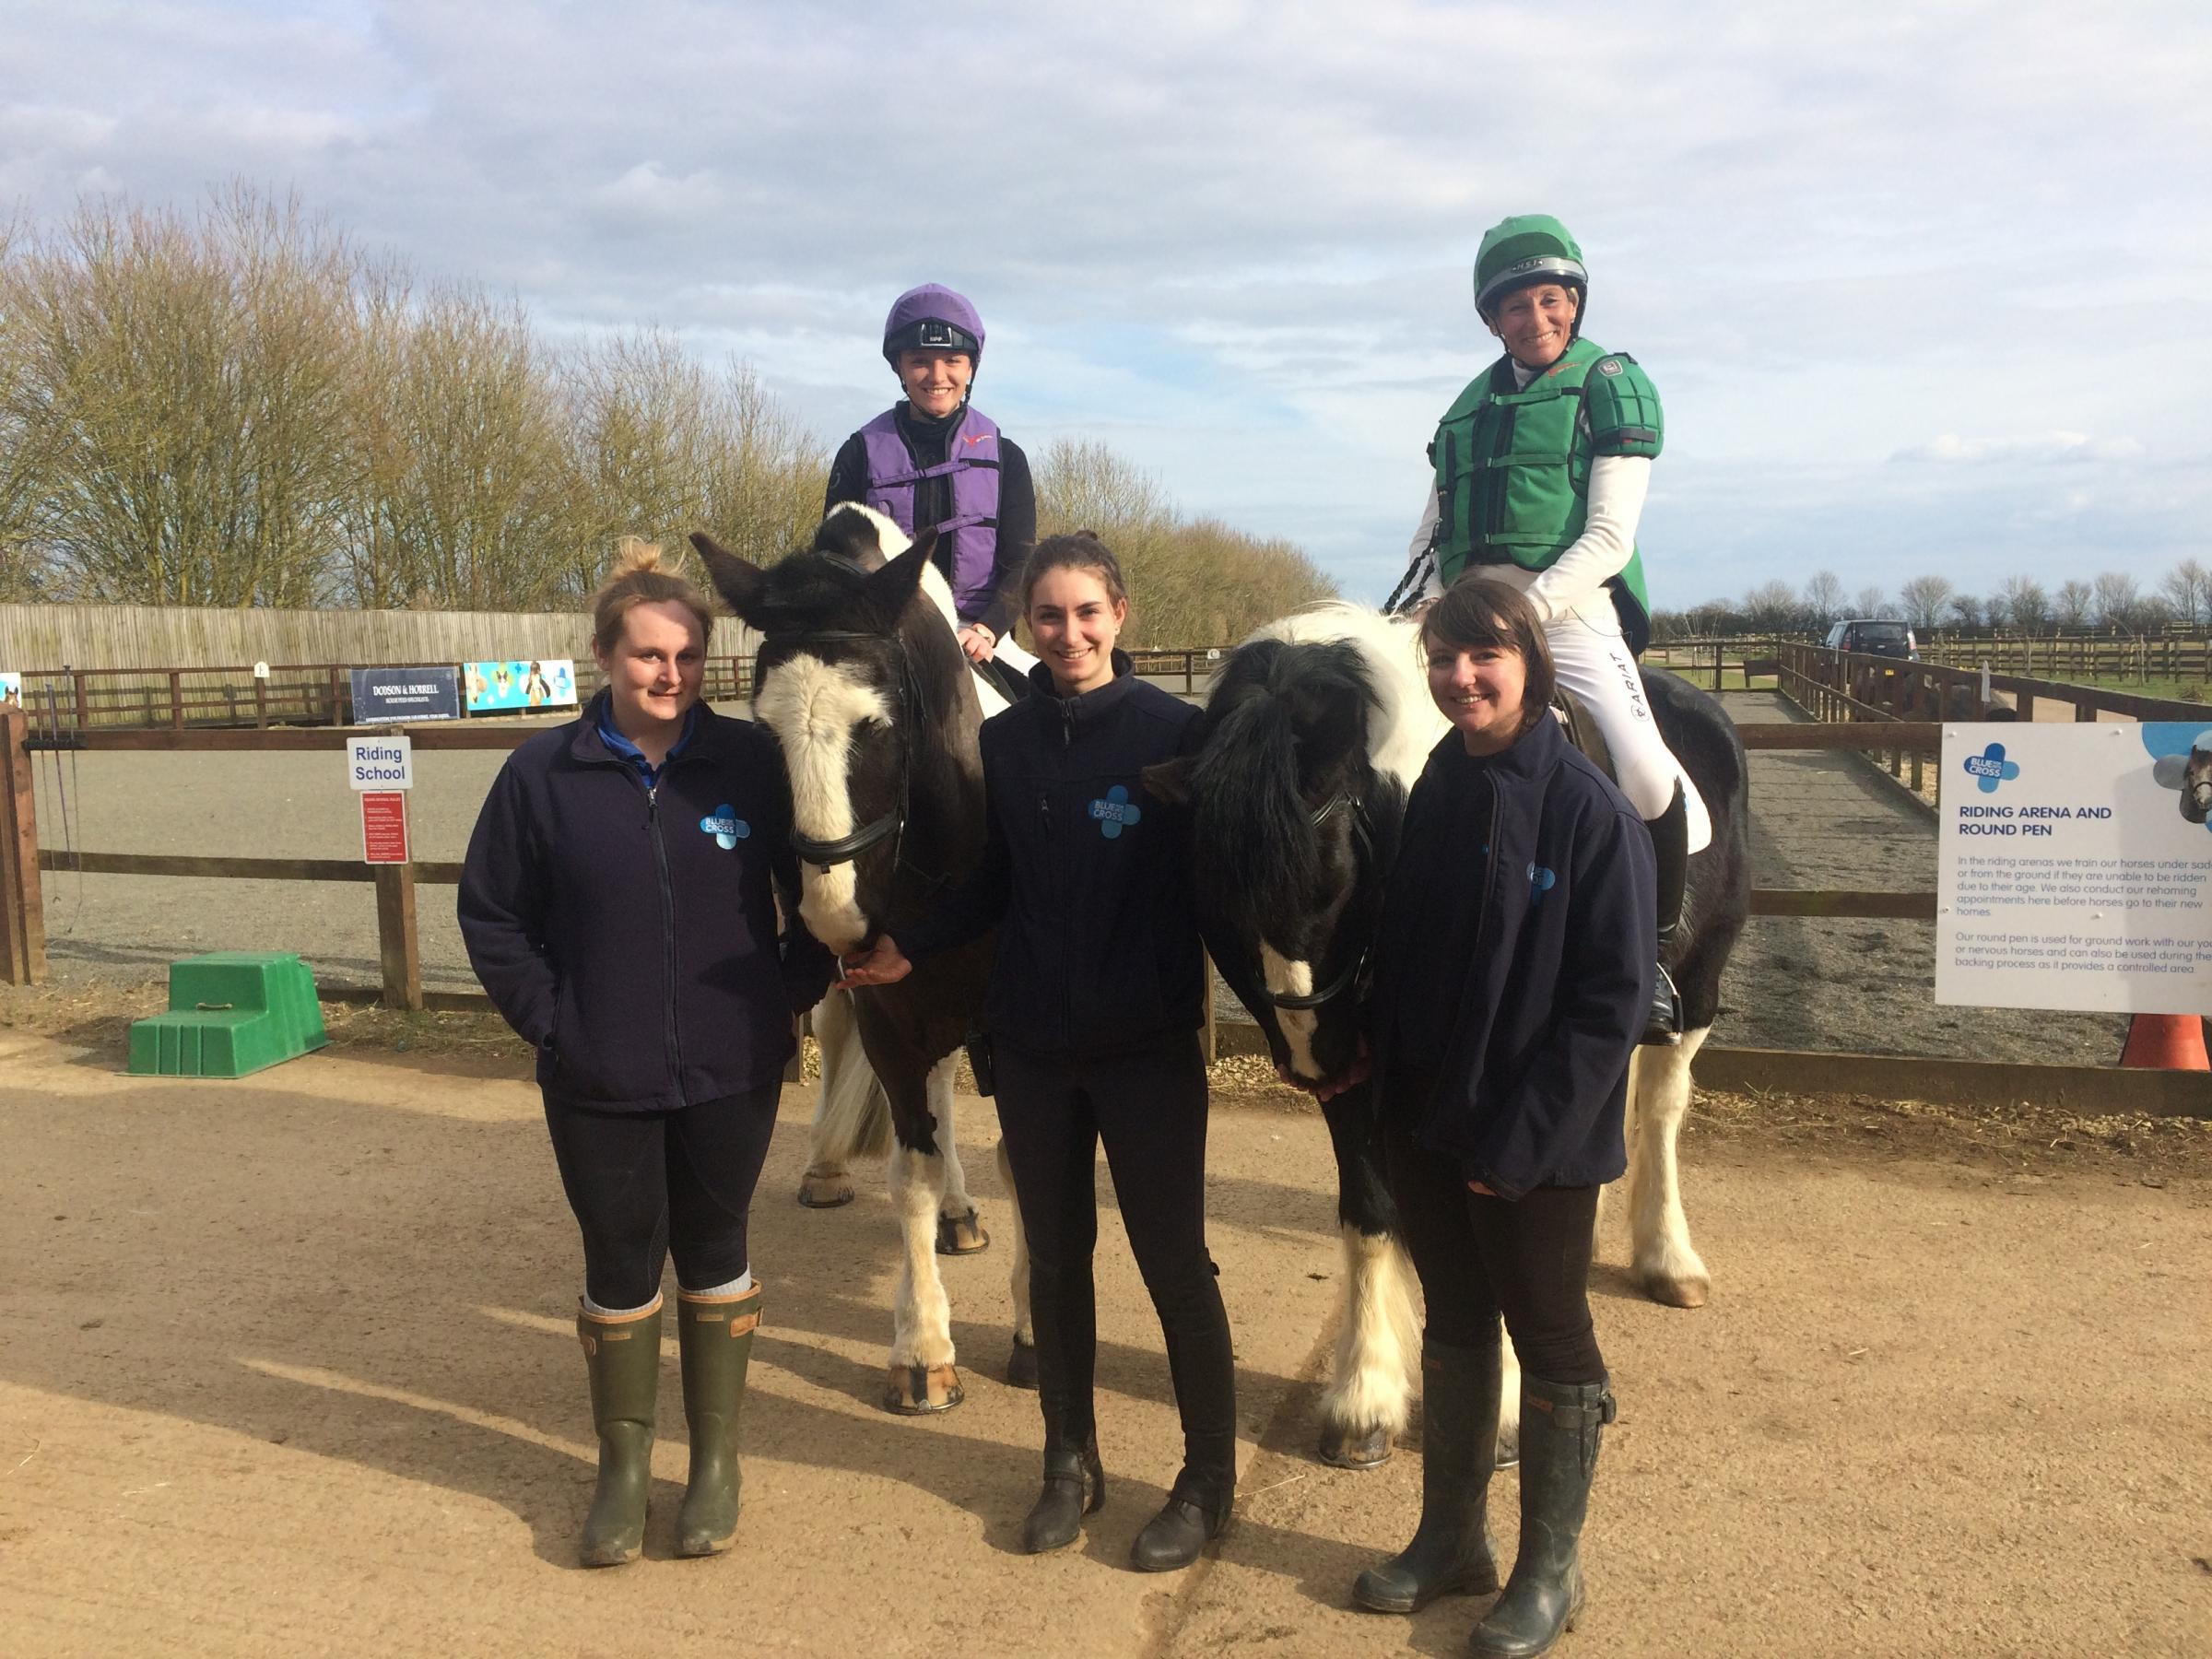 KINGS OF EVENTING: Veteran eventers and mother and daughter Mary and Emily King at the Blue Cross Burford rehoming centre with staff.